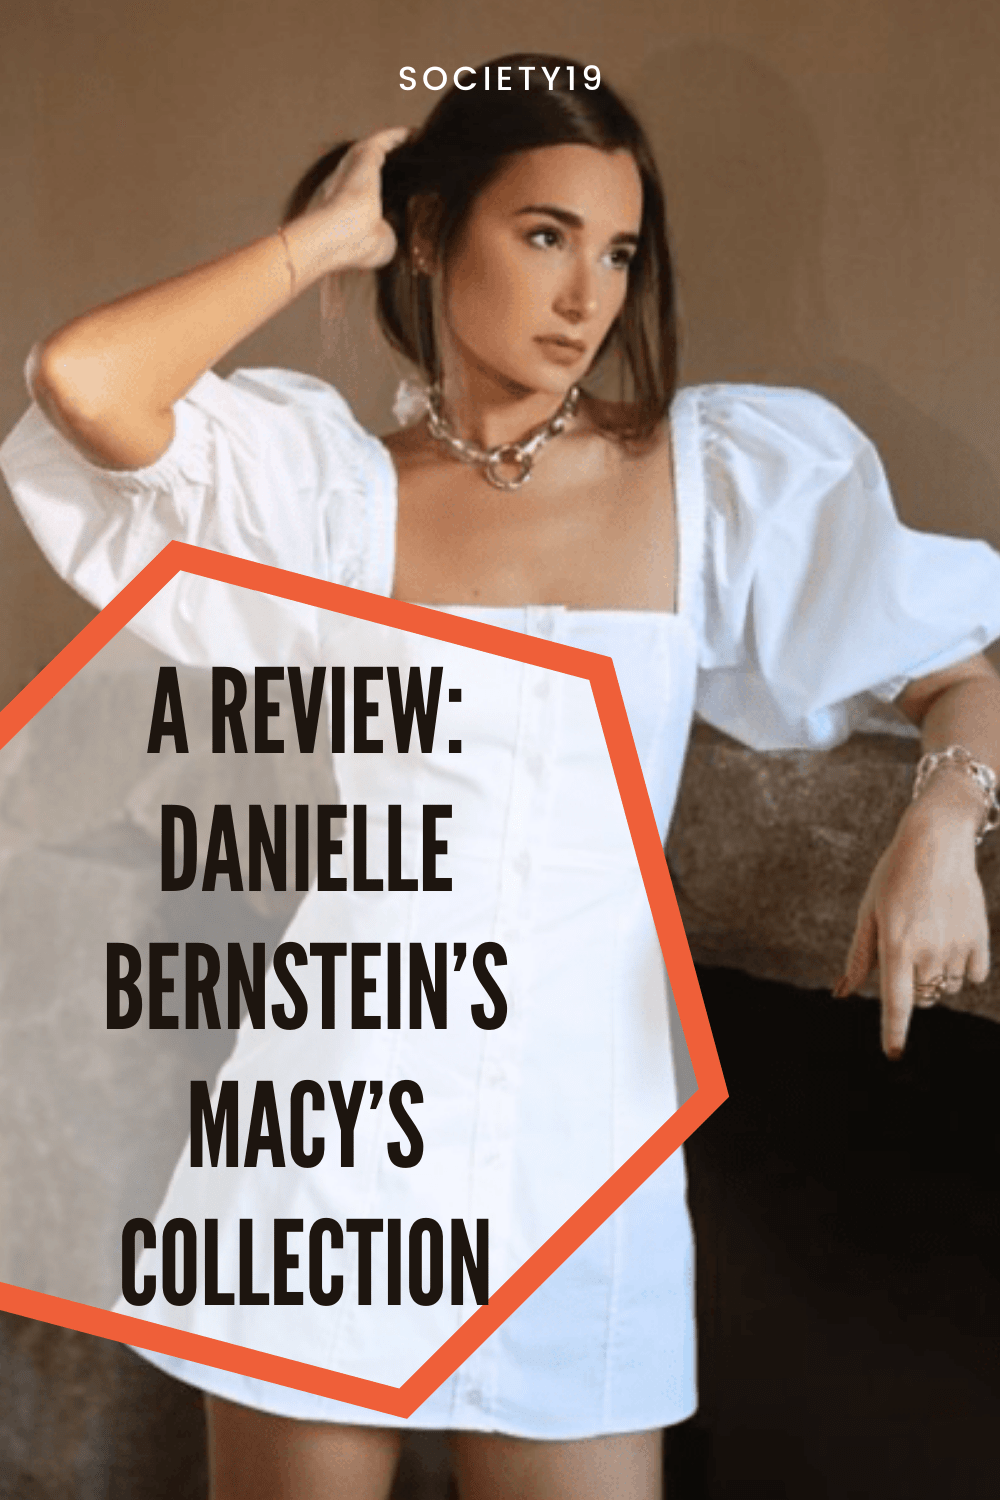 A Review: Danielle Bernstein's Macy's Collection